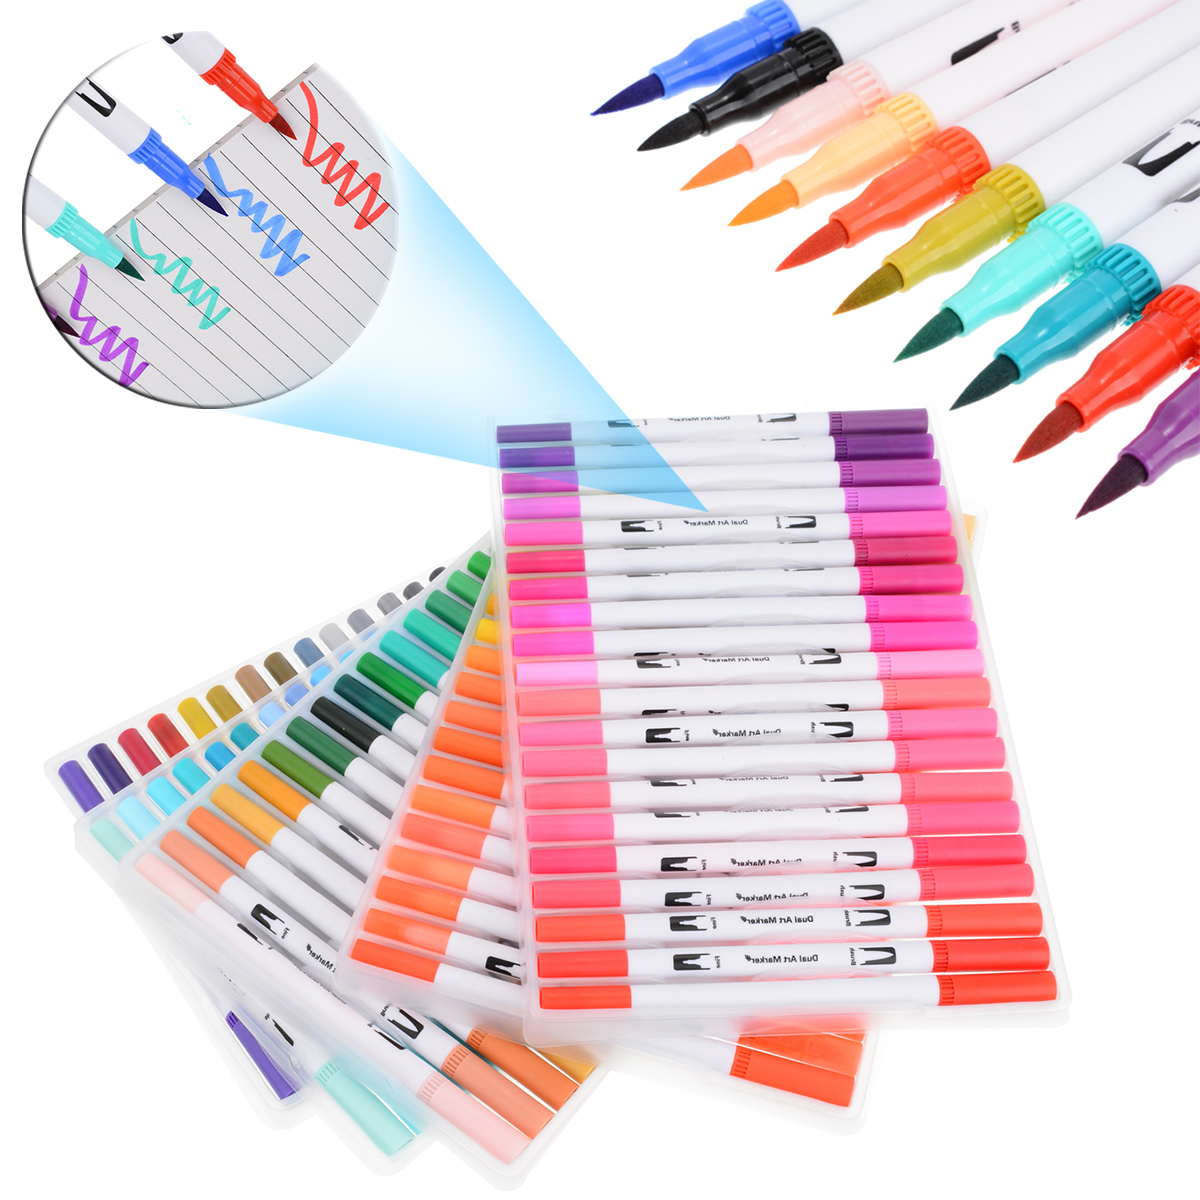 100pcs Marker Pen Dual Head Marker Art Graphic Drawing Manga Twin Tip Brush Fineliner Sketch Marker Pen100pcs Marker Pen Dual Head Marker Art Graphic Drawing Manga Twin Tip Brush Fineliner Sketch Marker Pen